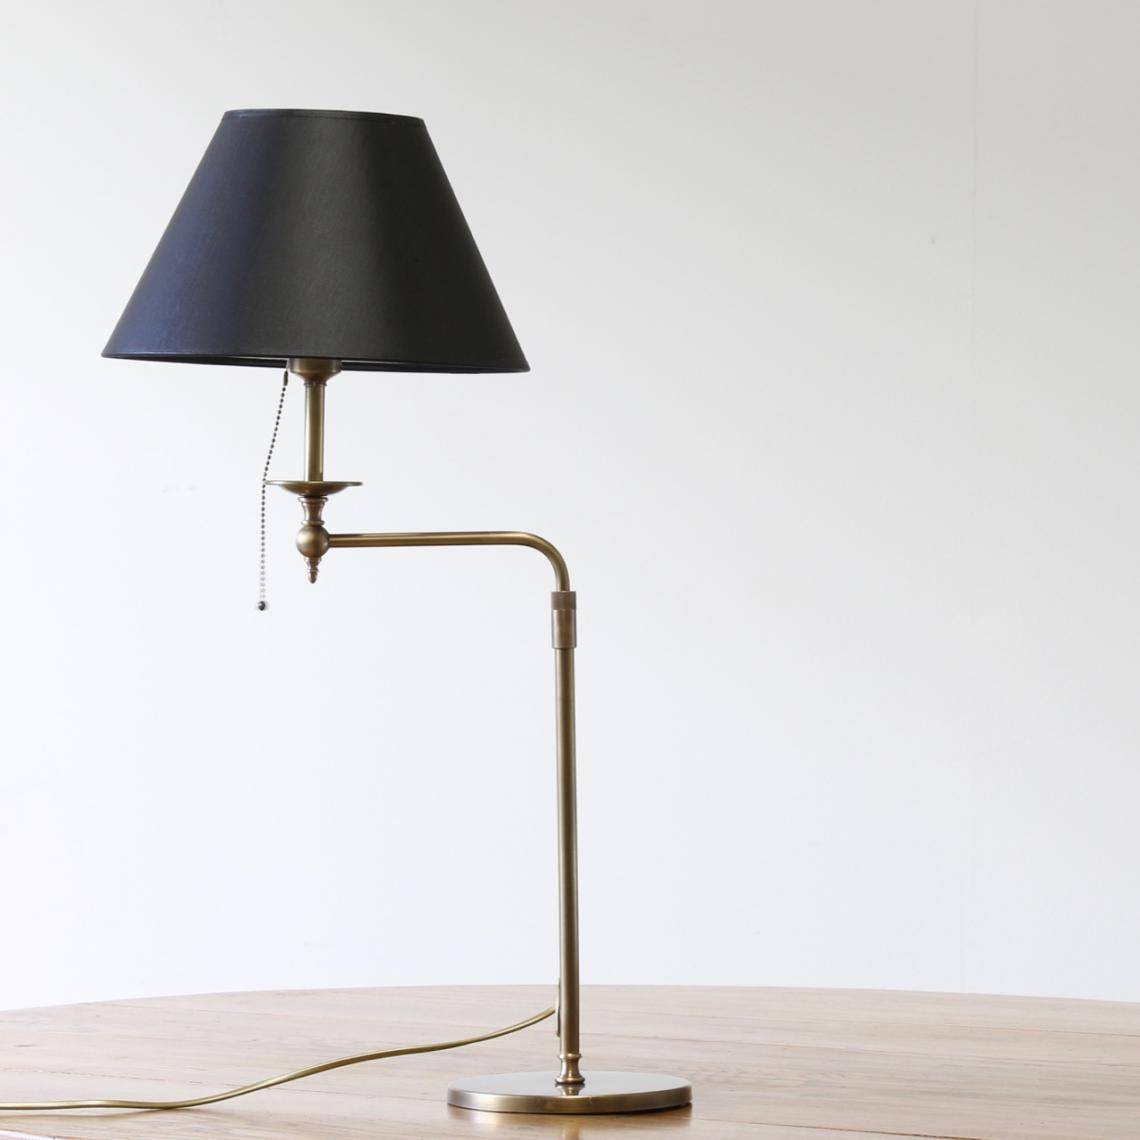 115-59 - French Table Lamp